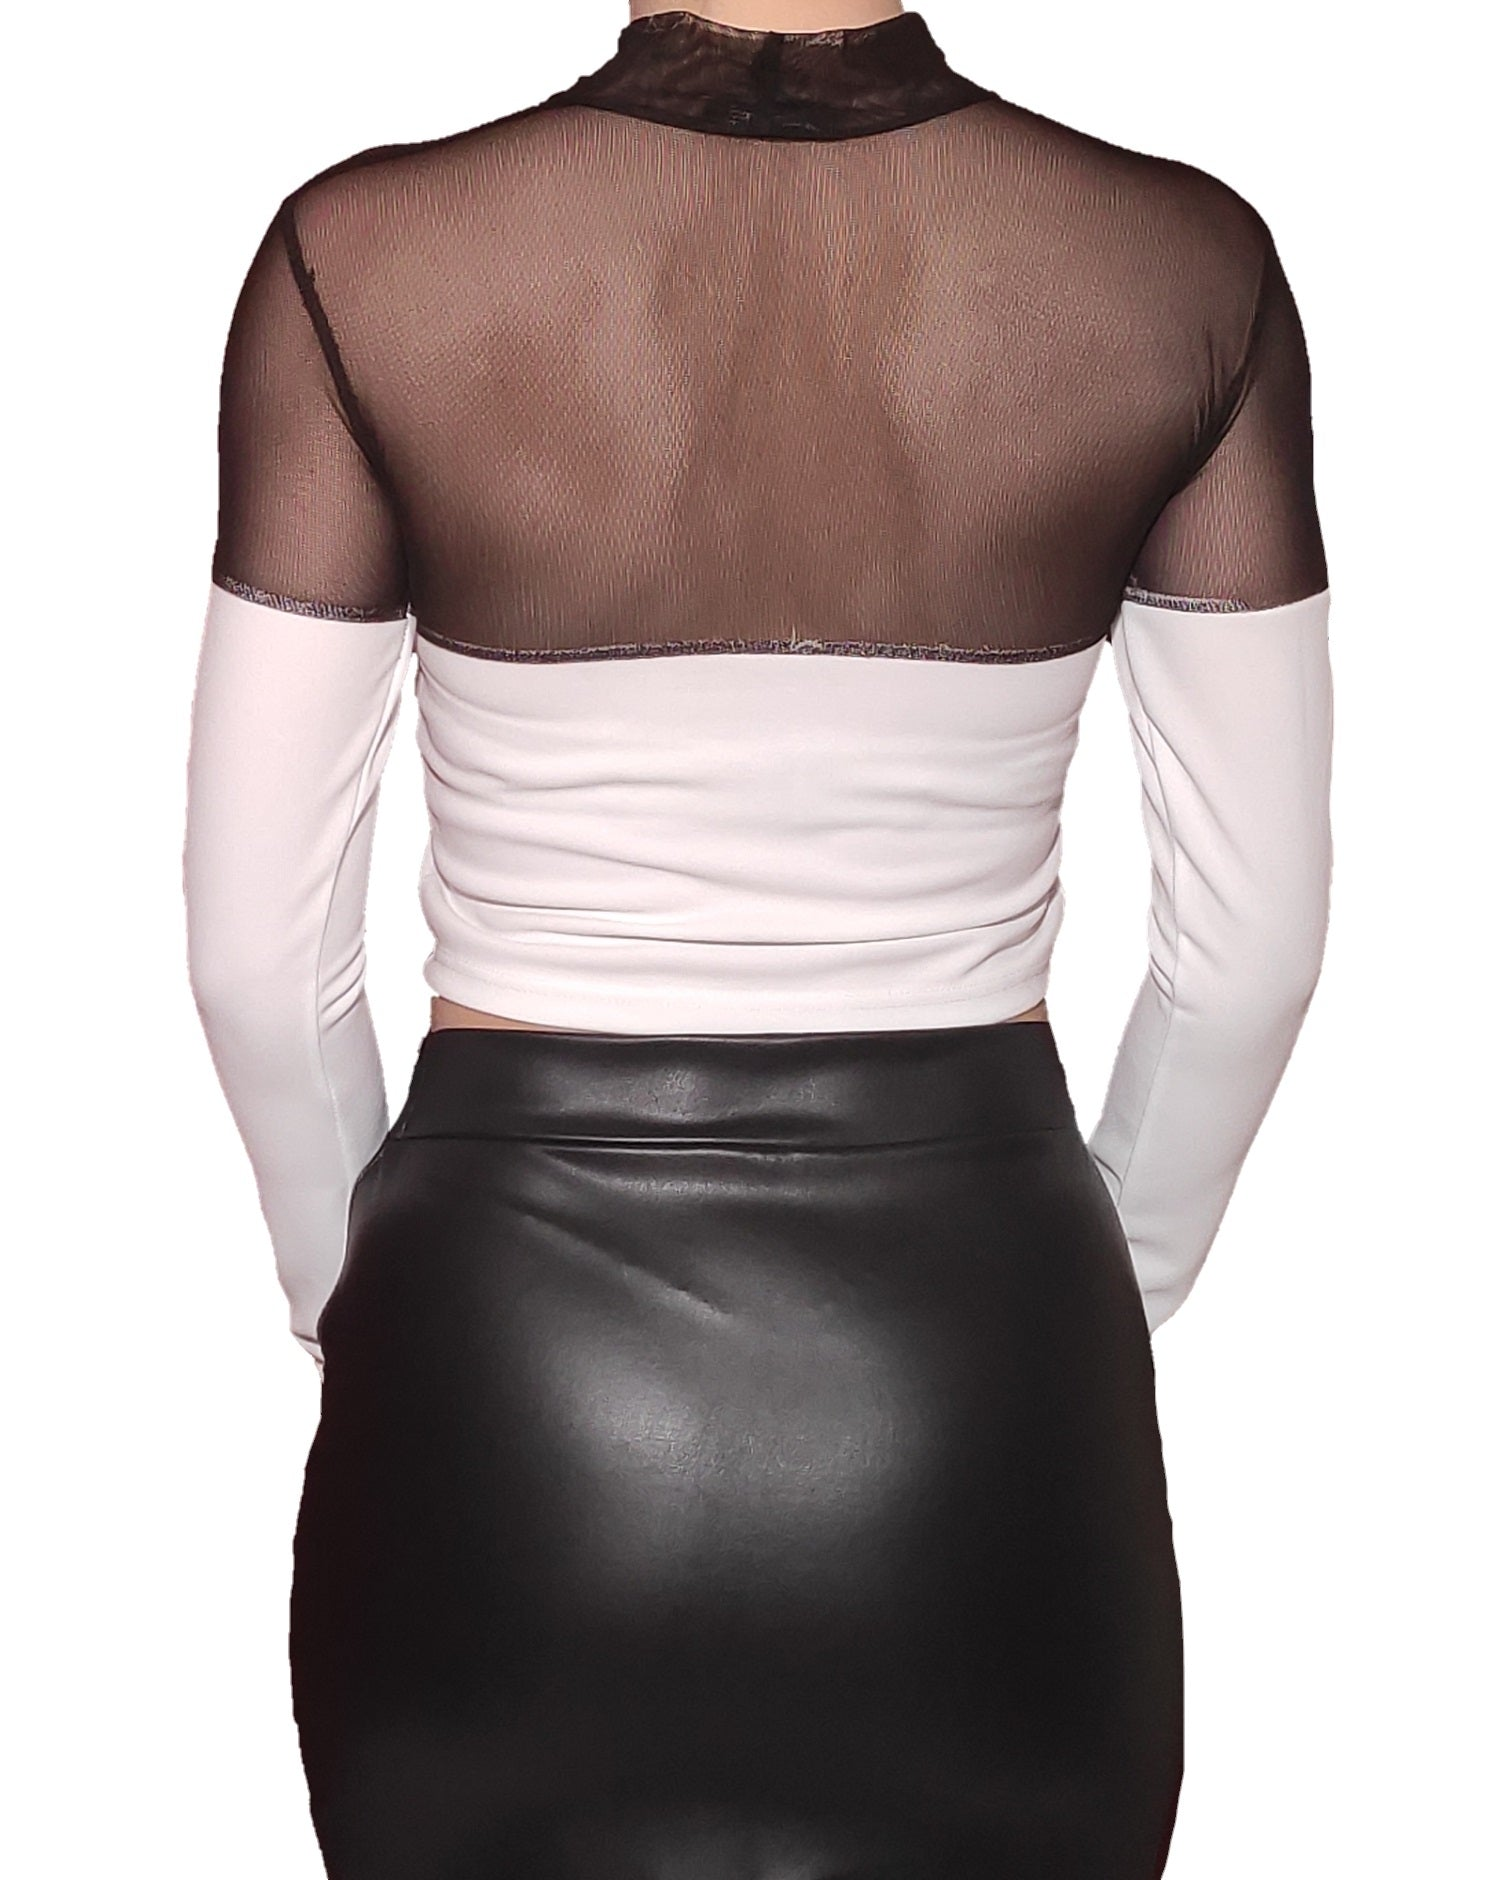 a-girl-wears-a-black-and-white-blouse-with-transparency-back-side